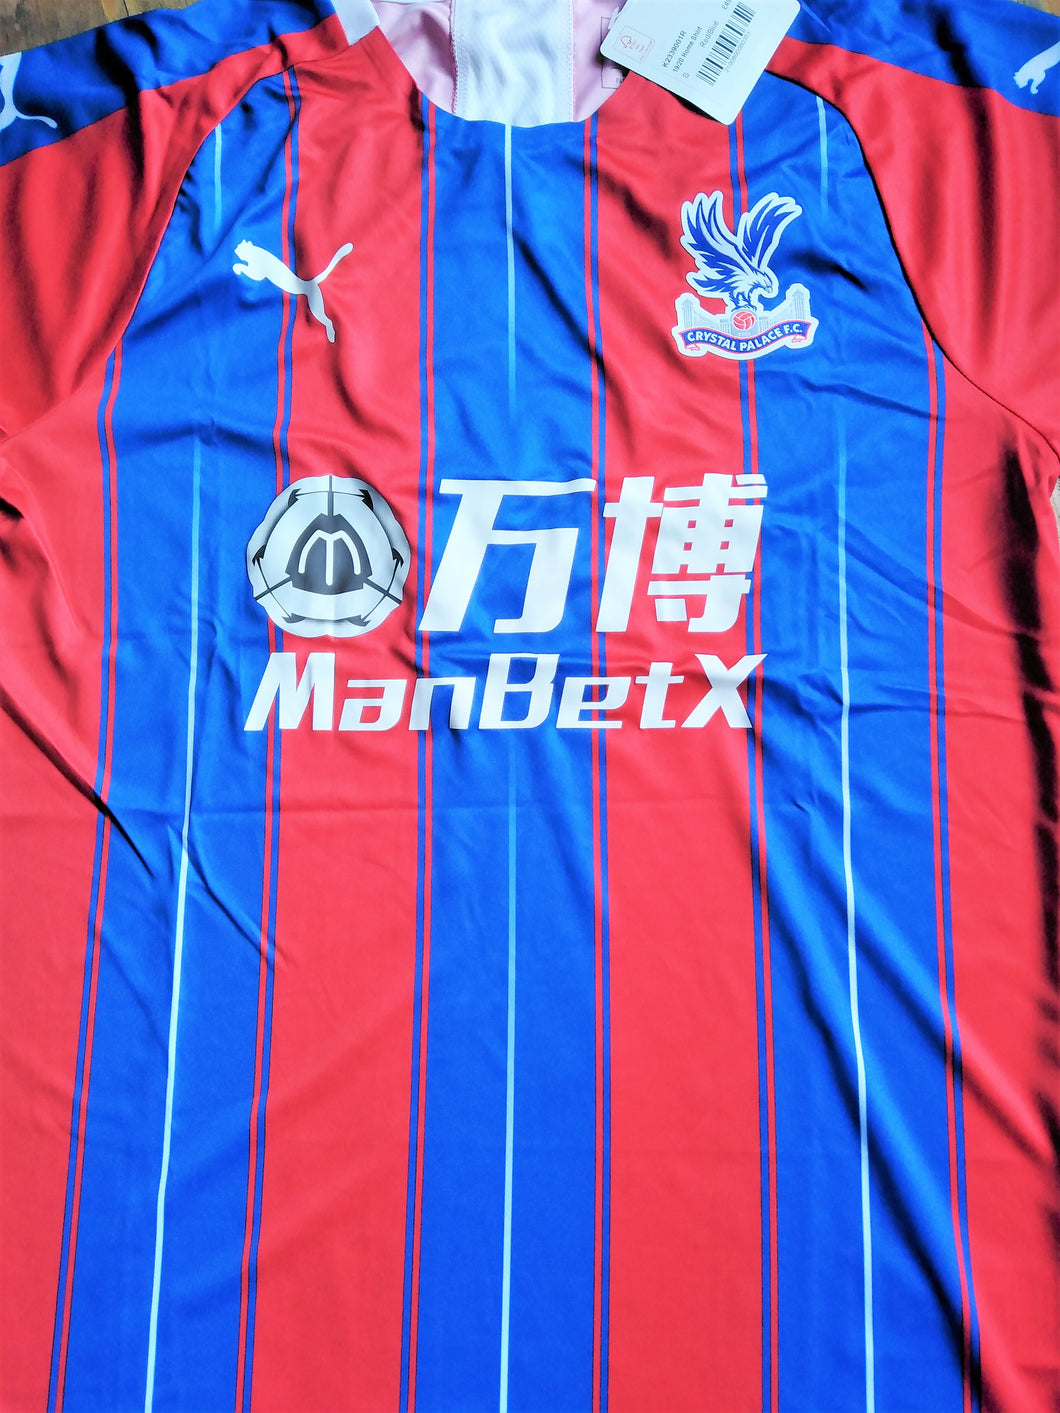 CRYSTAL PALACE Shirts - various years & sizes